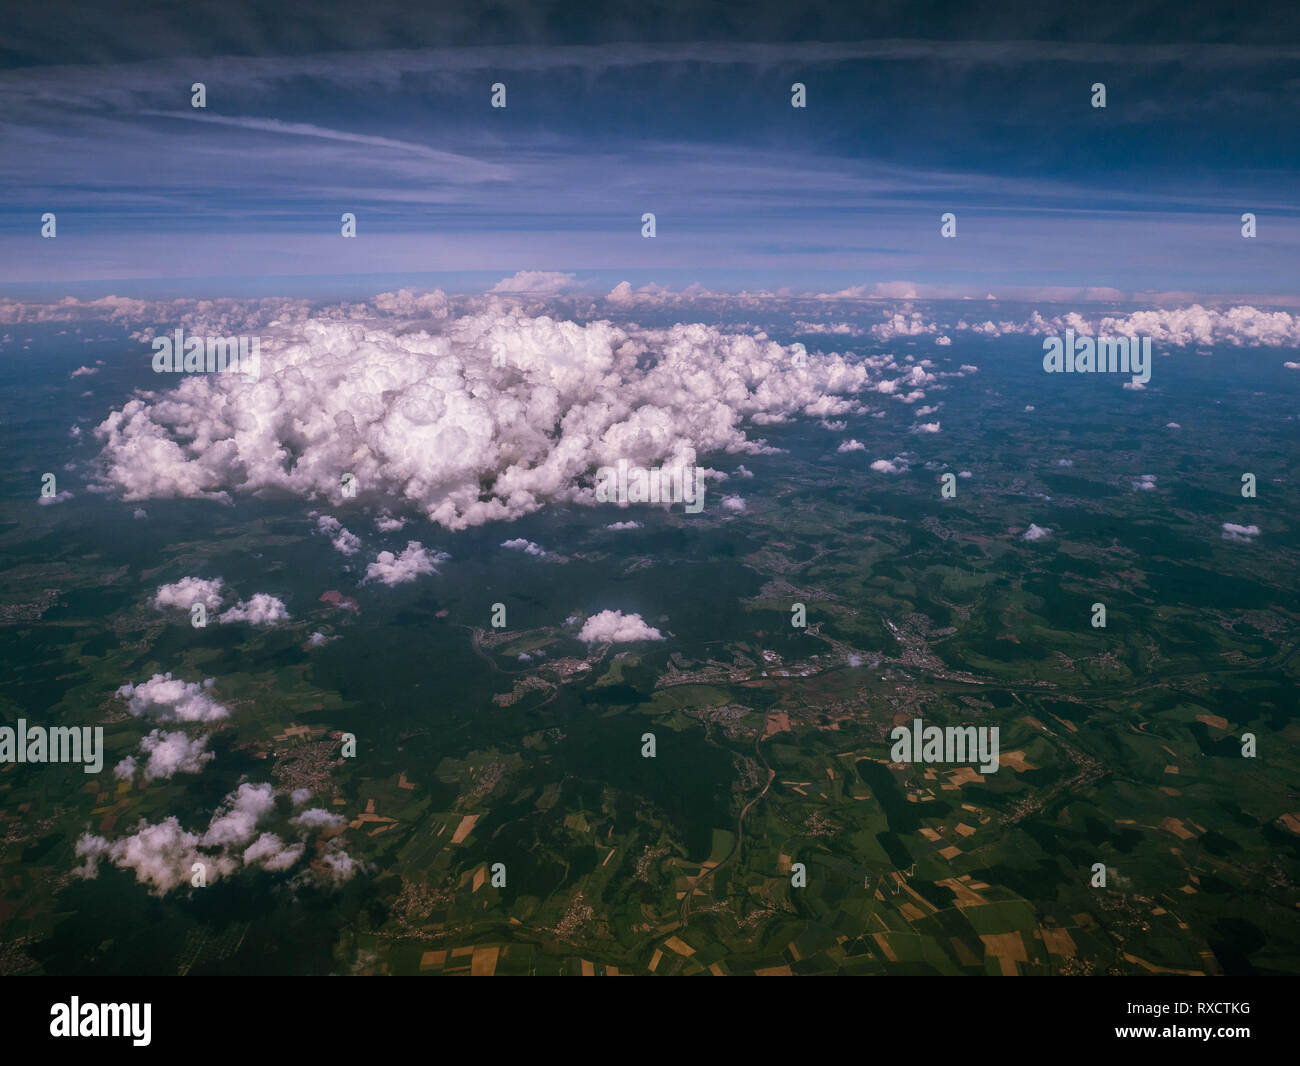 View of clouds, green landscape and cities out of aircraft window Stock Photo